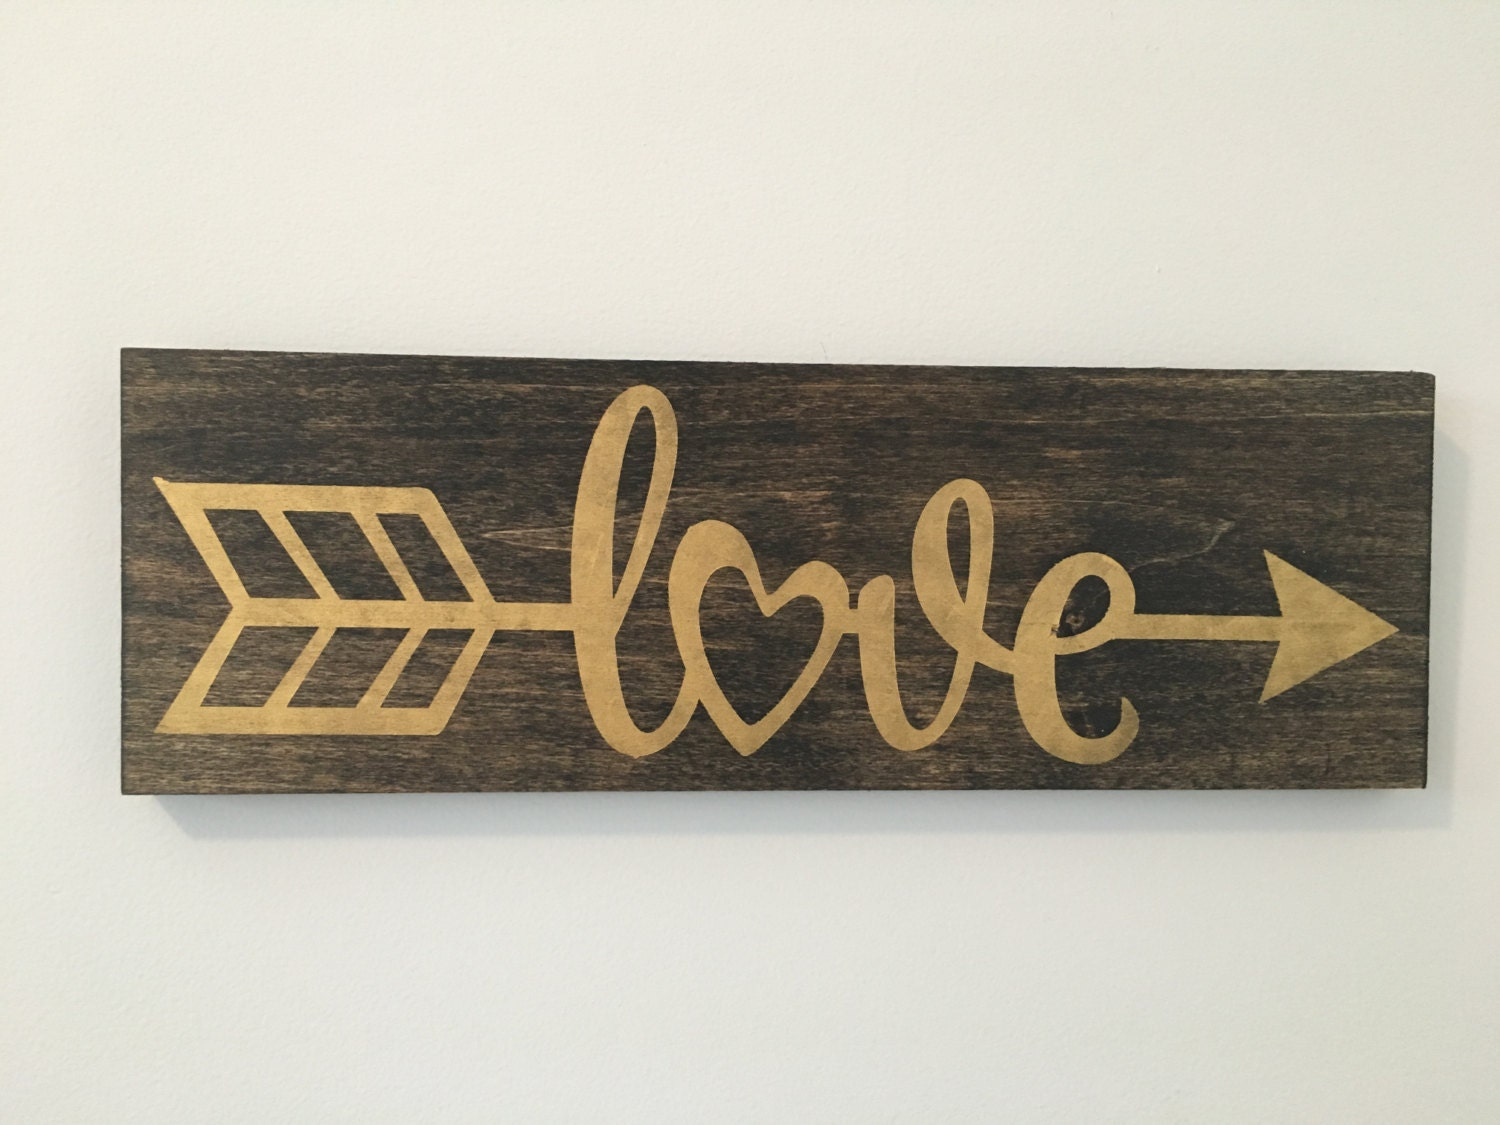 Love arrow sign wood sign gold decor gallery wall decor for Love sign